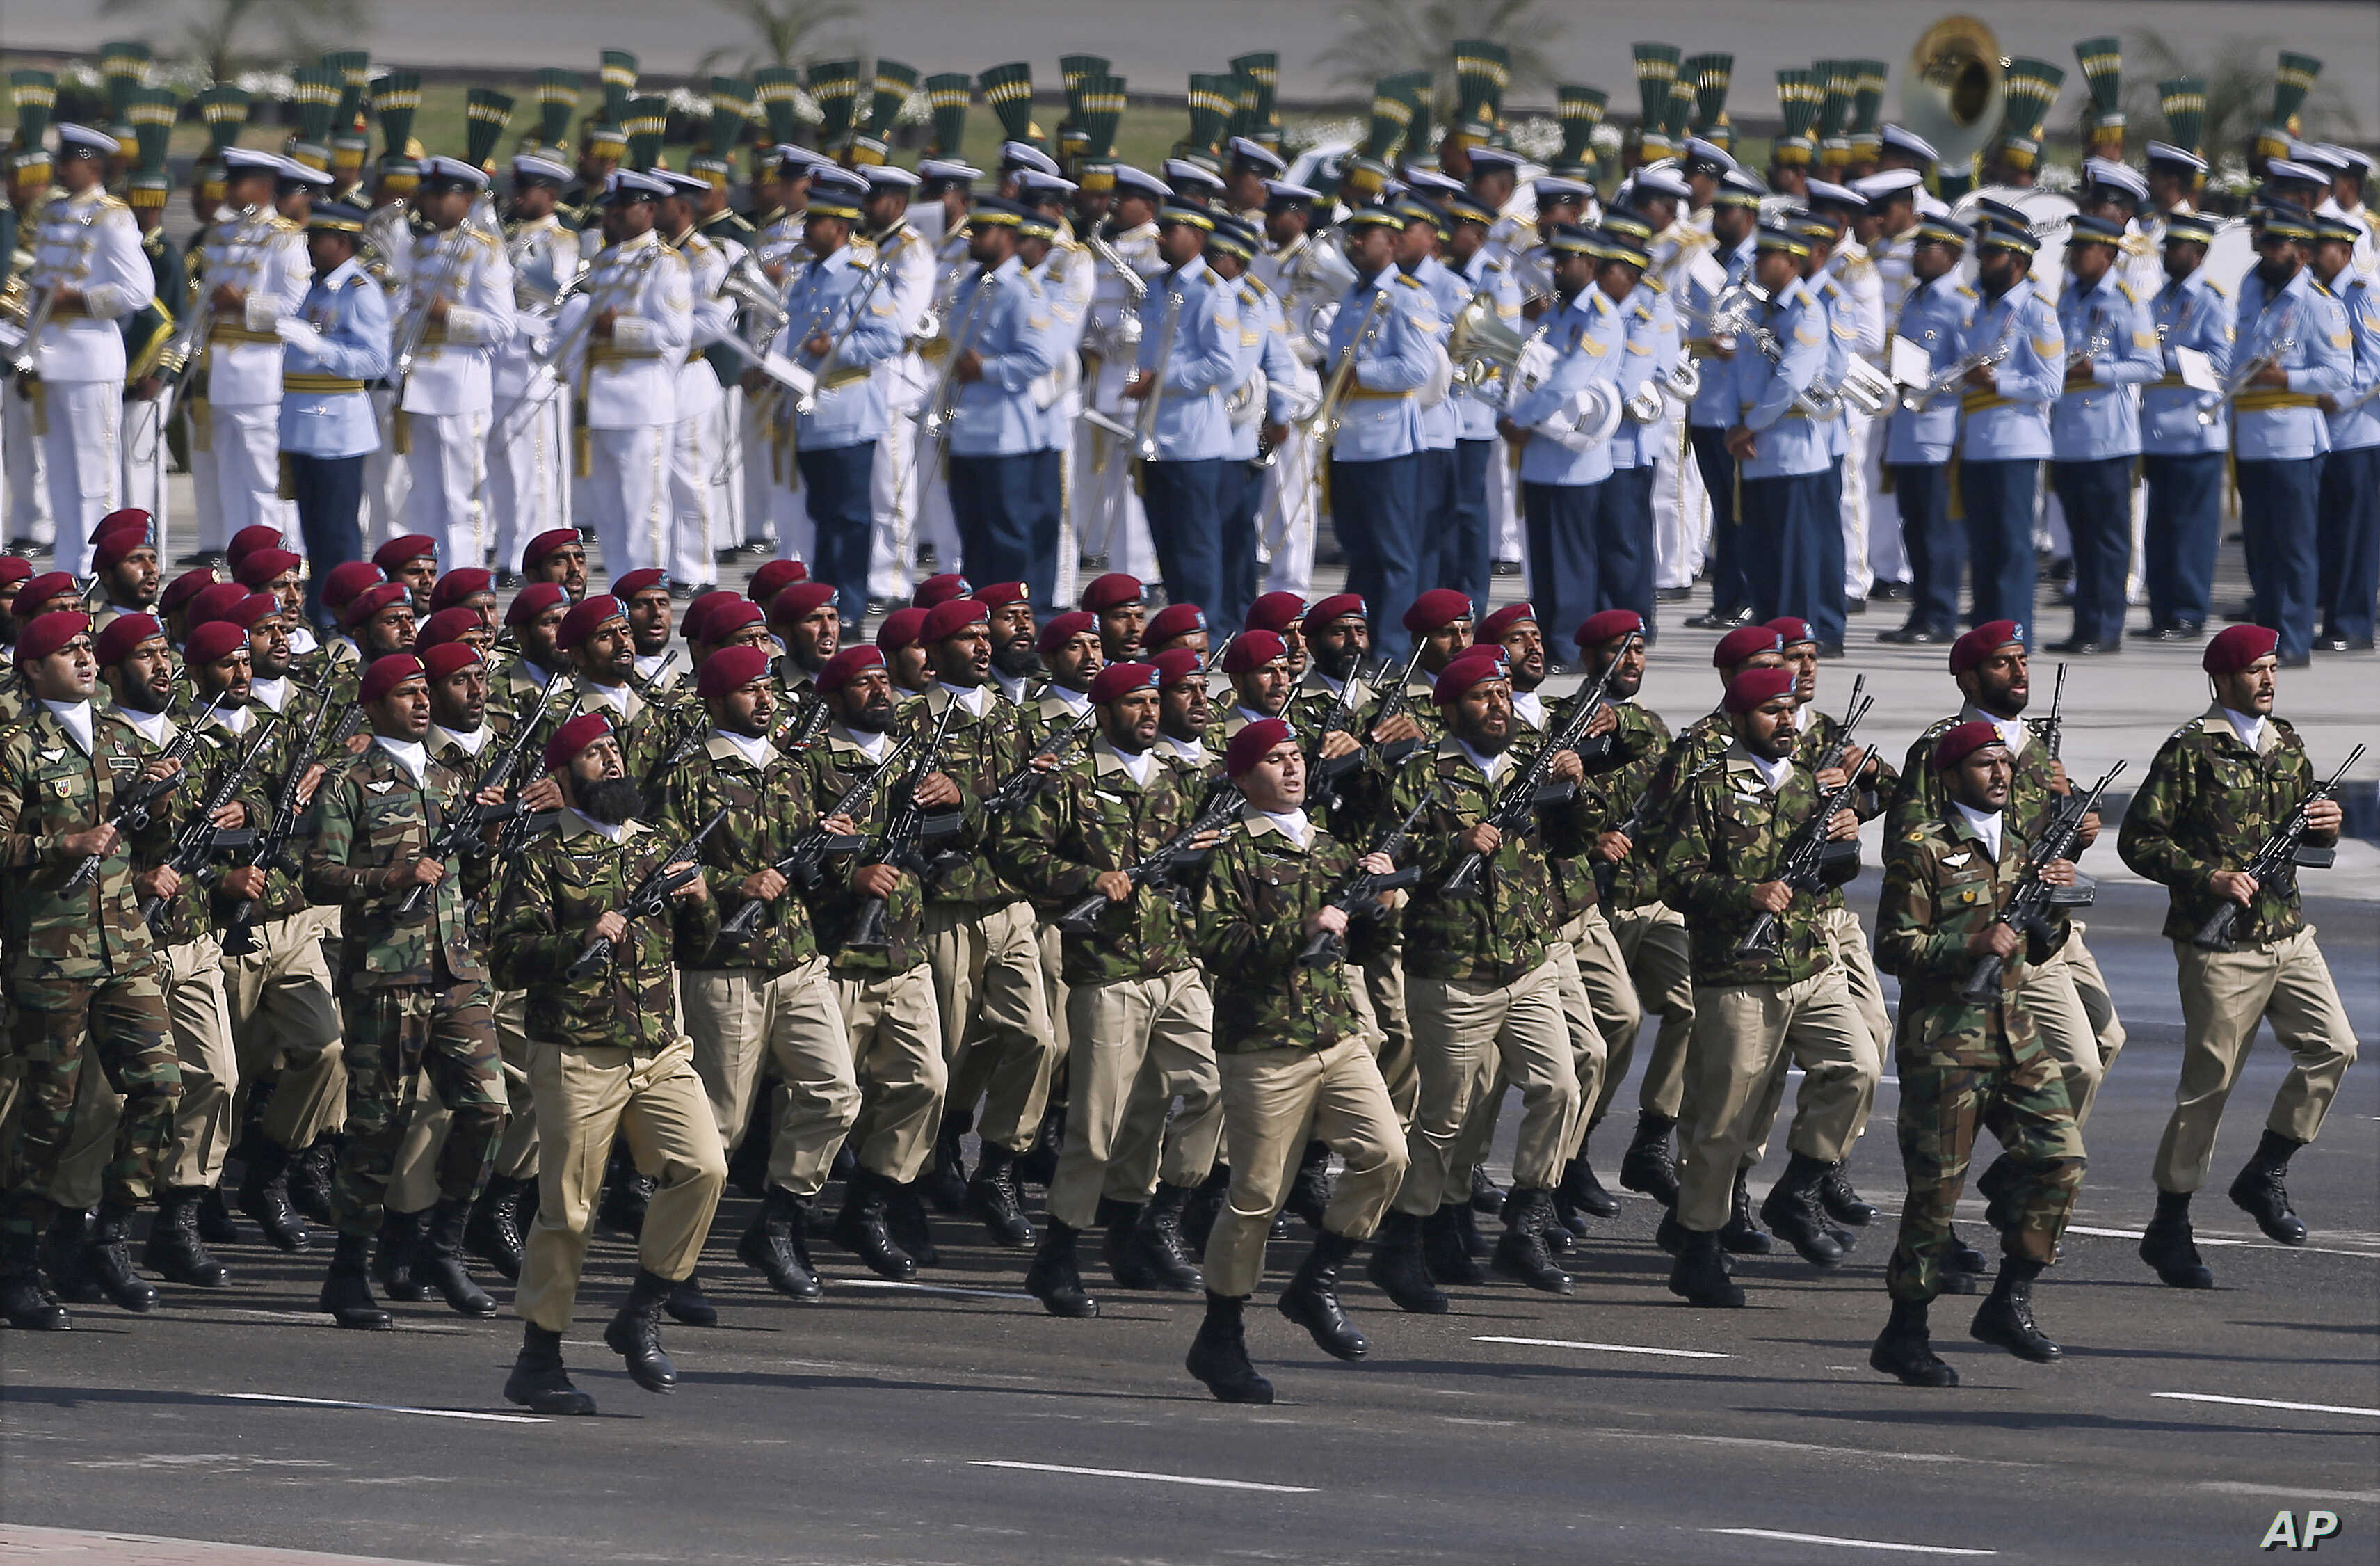 Pakistani commandos from the Special Services Group march during a military parade to mark Pakistan's Republic Day, in Islamabad, Pakistan, March 23, 2017.